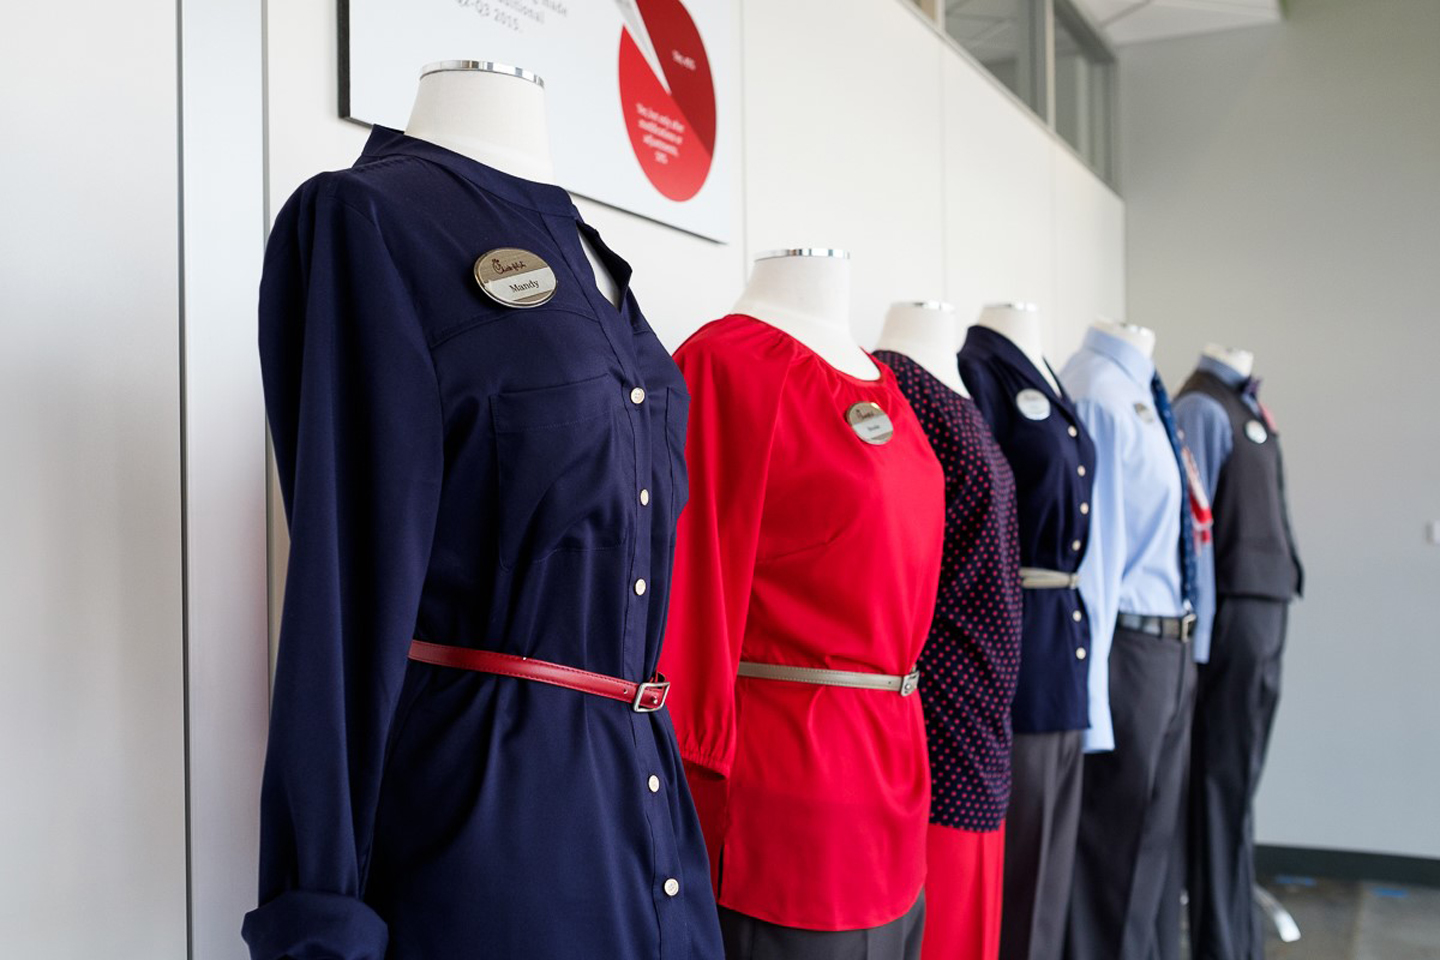 Chick-fil-A Uniforms: The Story Behind Our Style | Chick-fil-A